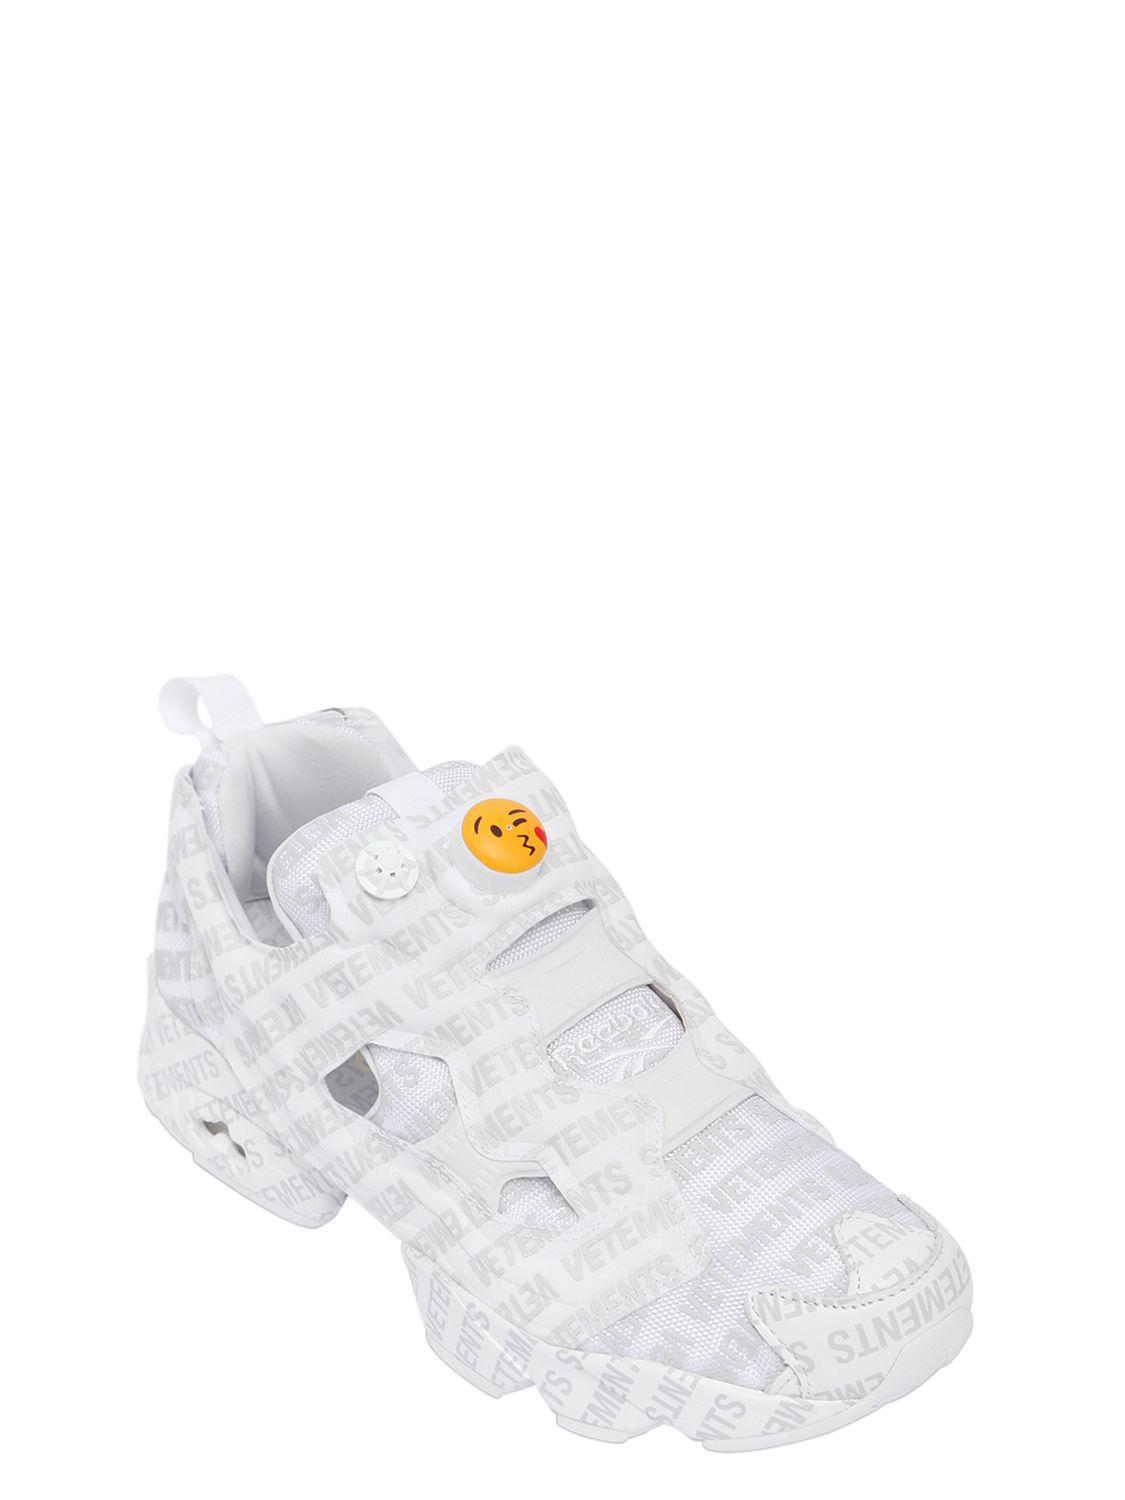 8e62fd8cacff Lyst - Vetements Reebok Logo Instapump Fury Sneakers in White for Men -  Save 19%